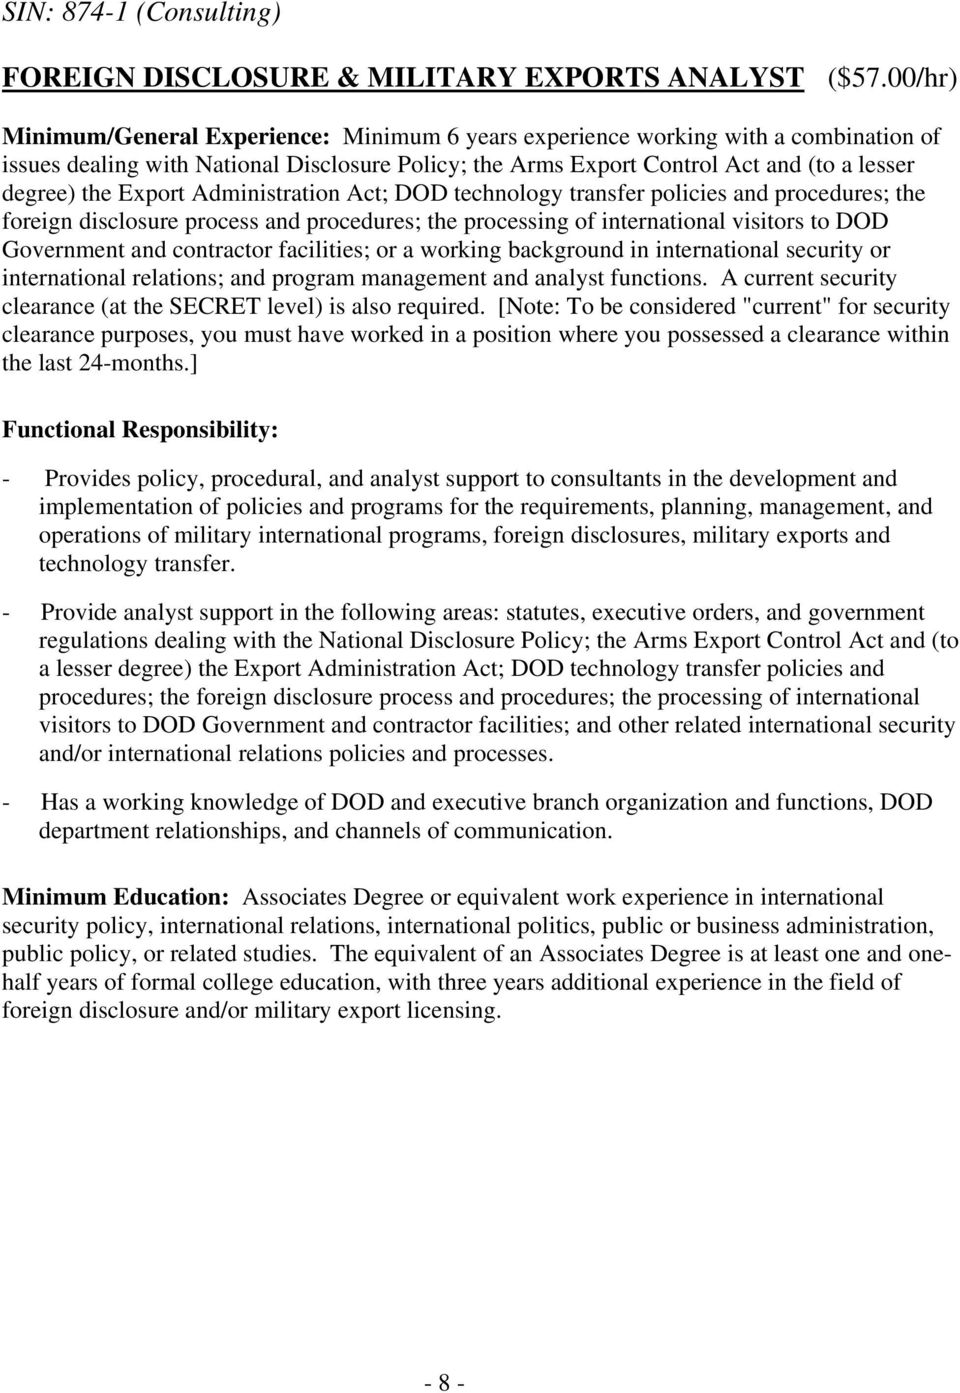 Export Administration Act; DOD technology transfer policies and procedures; the foreign disclosure process and procedures; the processing of international visitors to DOD Government and contractor